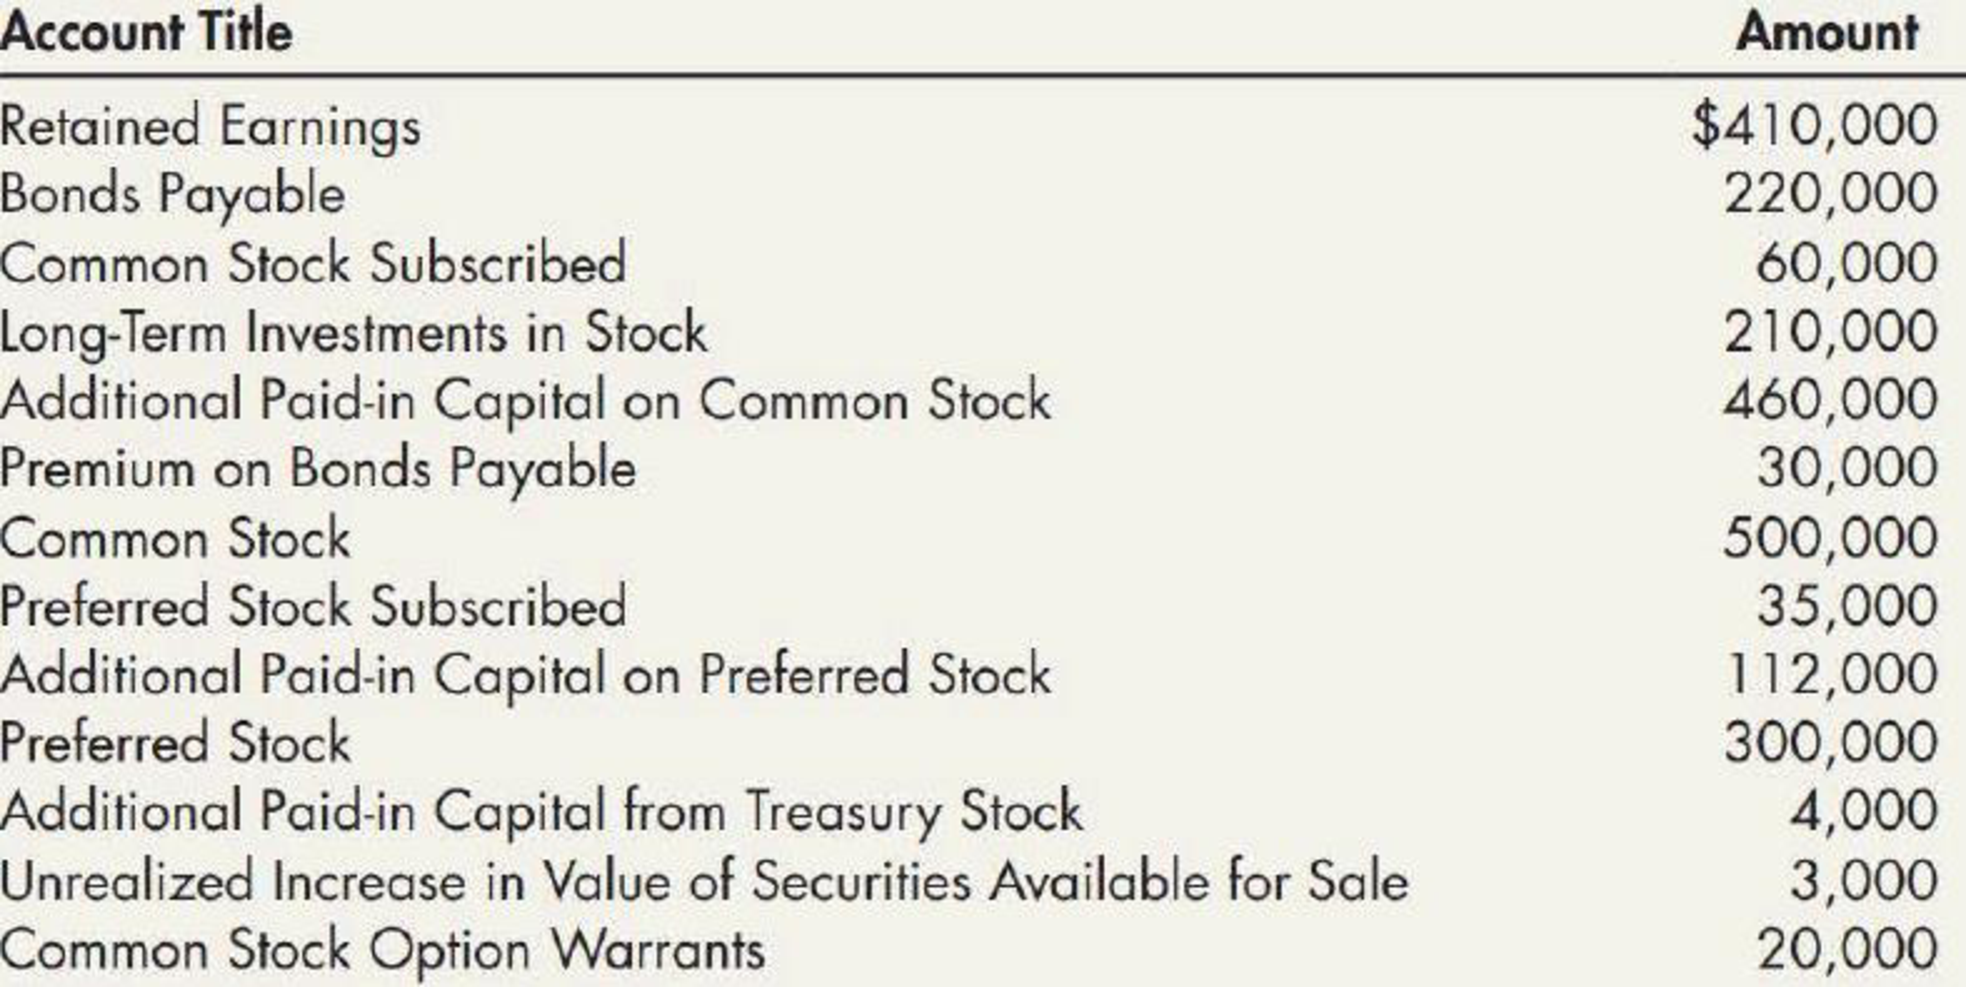 Chapter 15, Problem 13P, Contributed Capital A partial list of the accounts and ending account balances taken from the